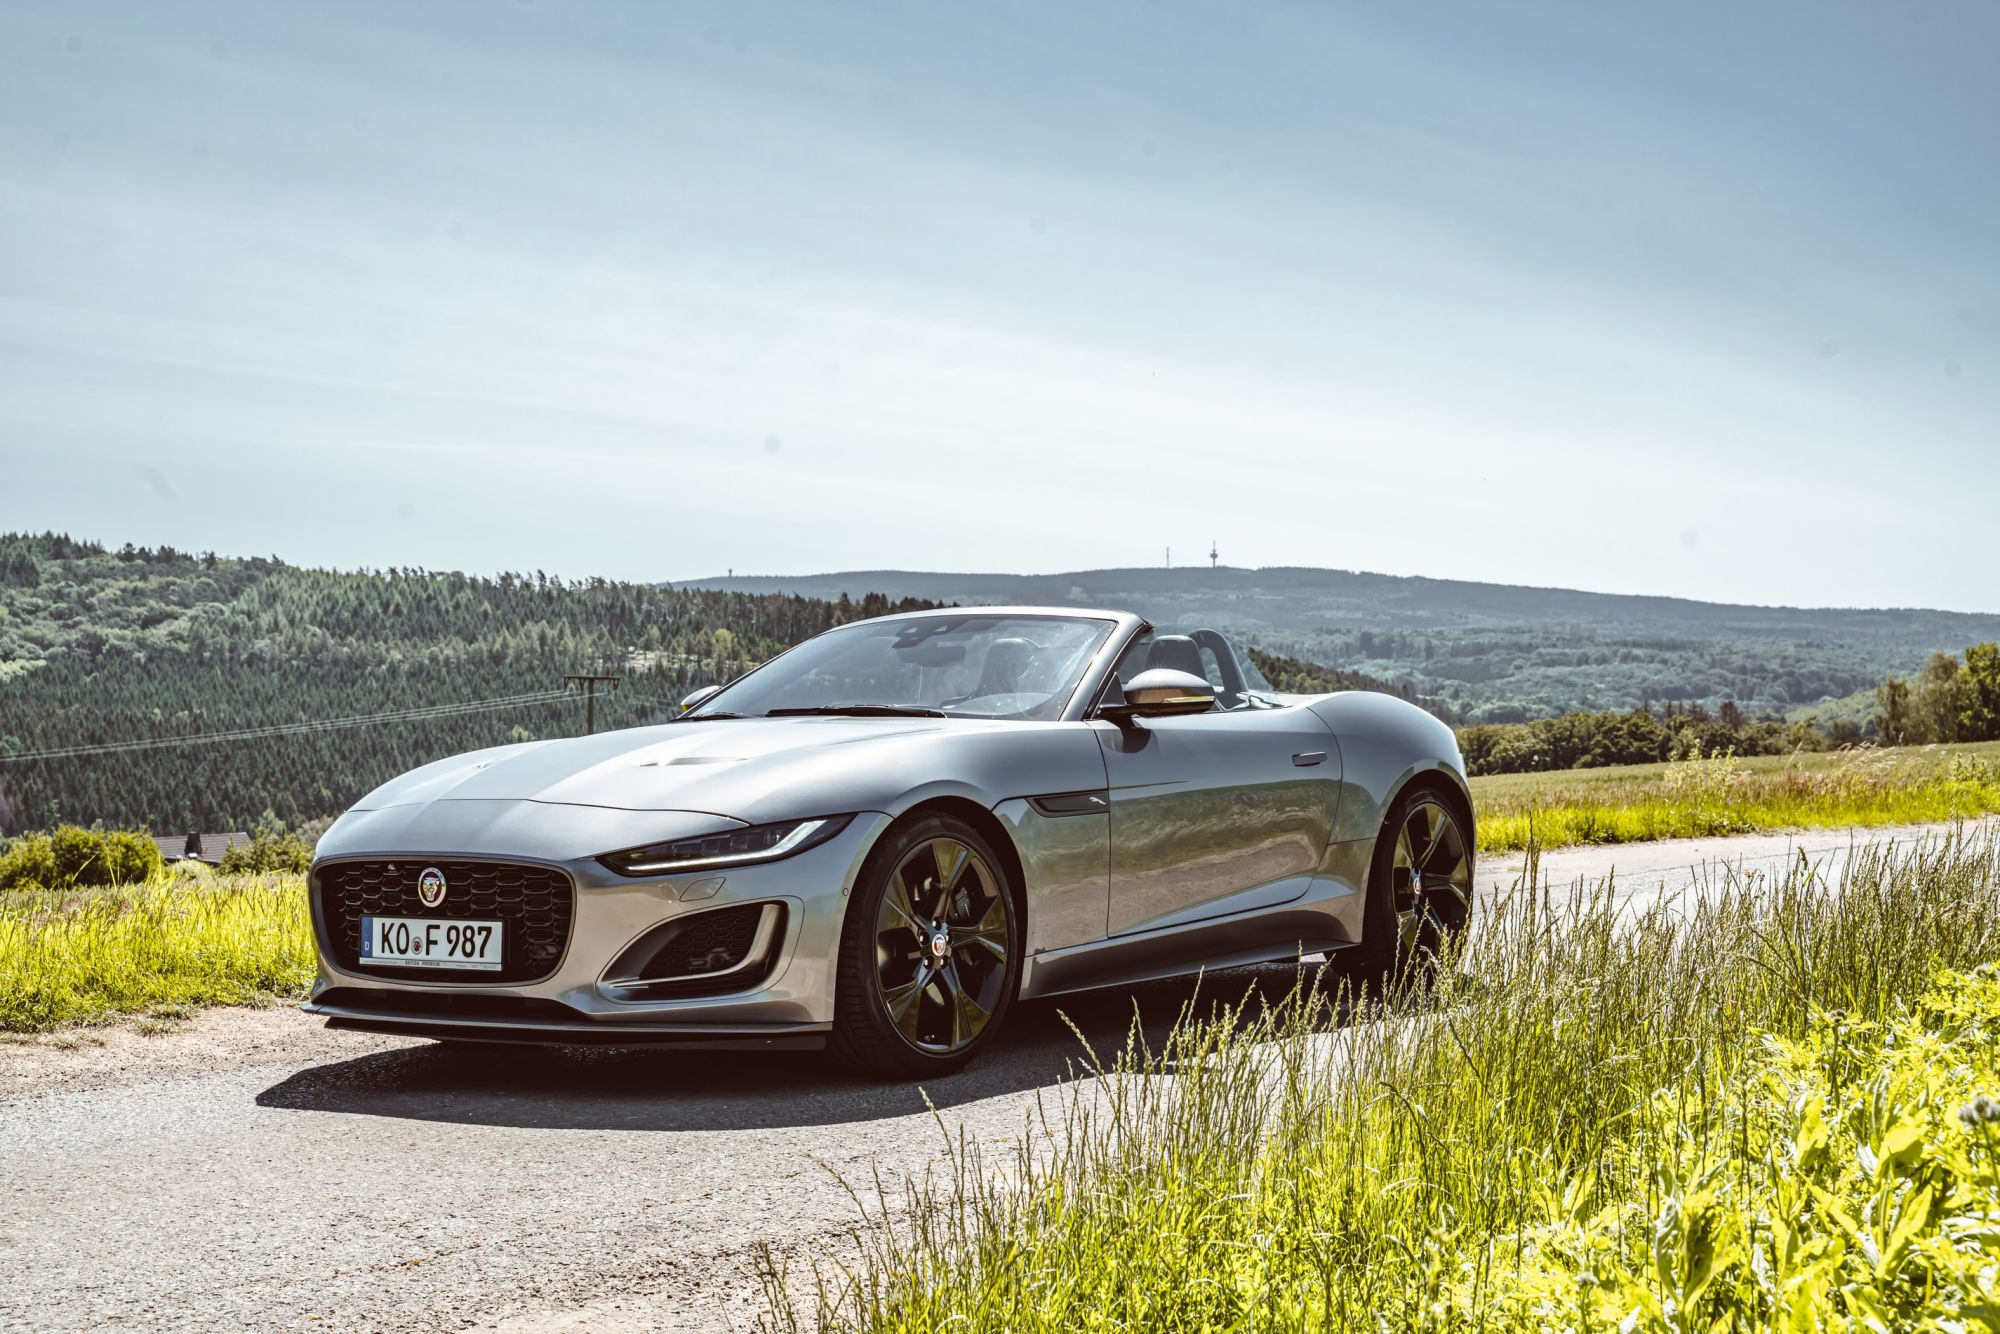 Automobile News: Jaguar Car Brand To Go Fully Electric From 2025